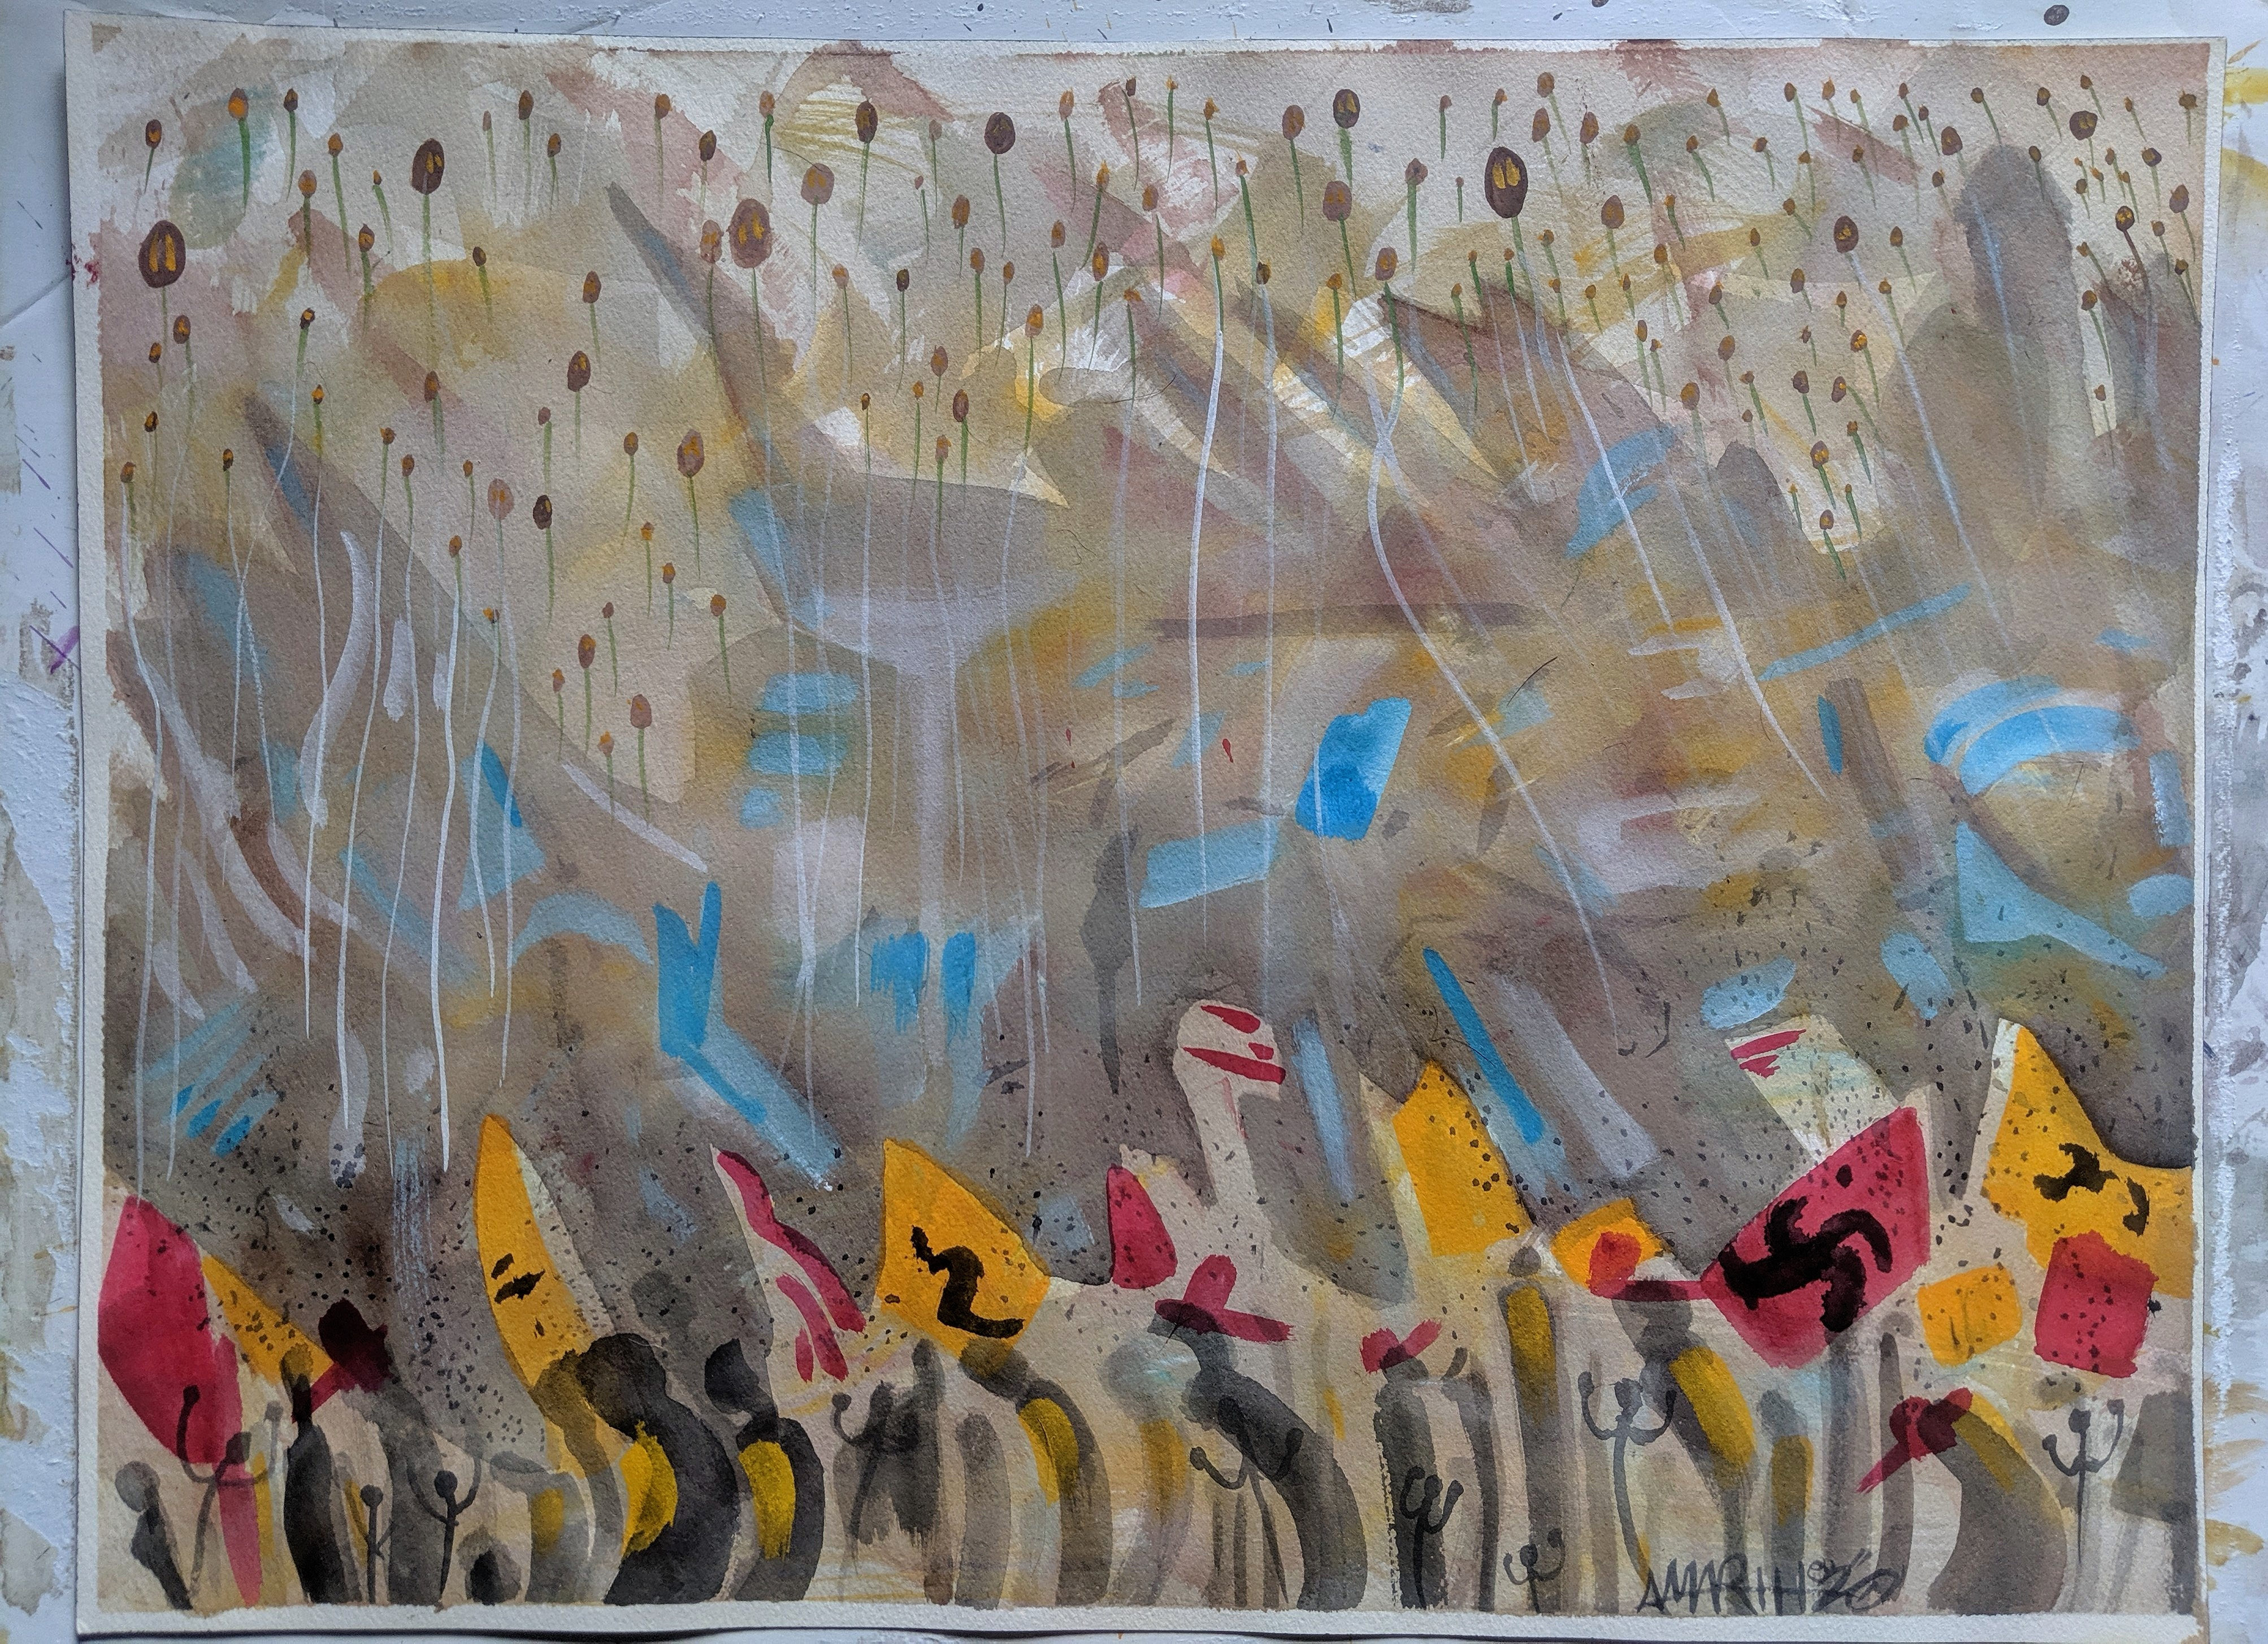 """no. 14 - Lansing (quarantine paintings, 2020)  watercolor, oil, gesso on arches paper, 18×24″  dedicated for Lisa Ewald nurse 1966-2020   """"COVID-19 has impacted the lives of so many citizens throughout the state of Michigan, and even more pronounced in the city of Detroit, as we are the fastest growing city nationally with casualties related to this deadly disease."""" -Rep. Sherry Gay-Dagnogo  """"LIBERATE MICHIGAN!"""" -Donald Trump """